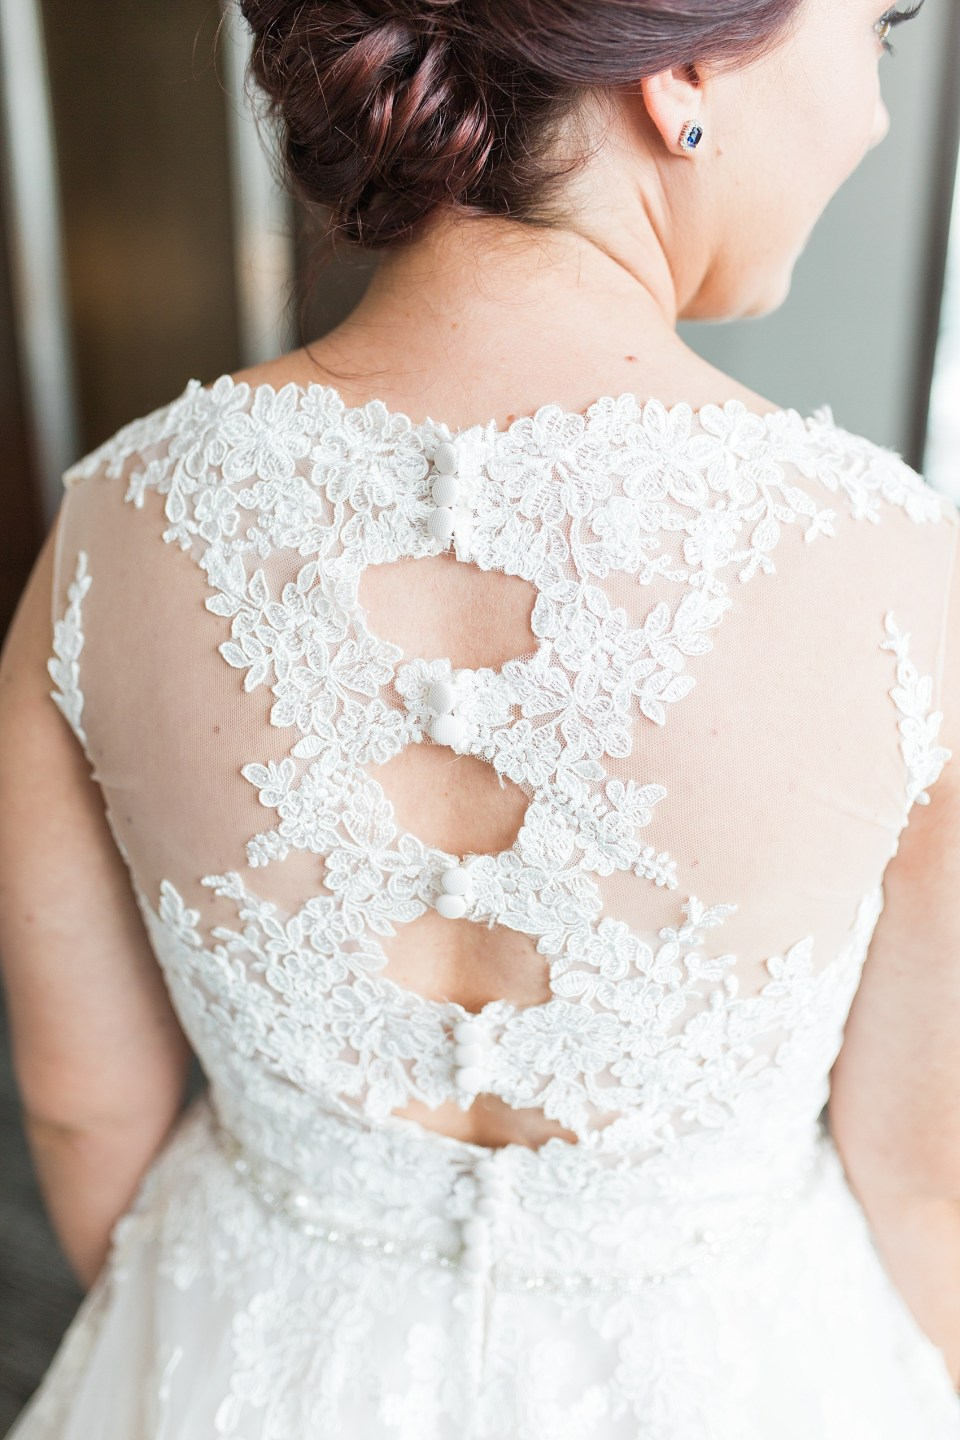 Xavier Wedding, Phoenix Wedding Photographer, Westin Phoenix Wedding Photographer, Phoenix Catholic Wedding Photographer, Arizona Catholic Weddings, Arizona Weddings, Florida Wedding Photographer, Virginia Wedding Photographer, Blush Wedding, Cranberry Wedding Details